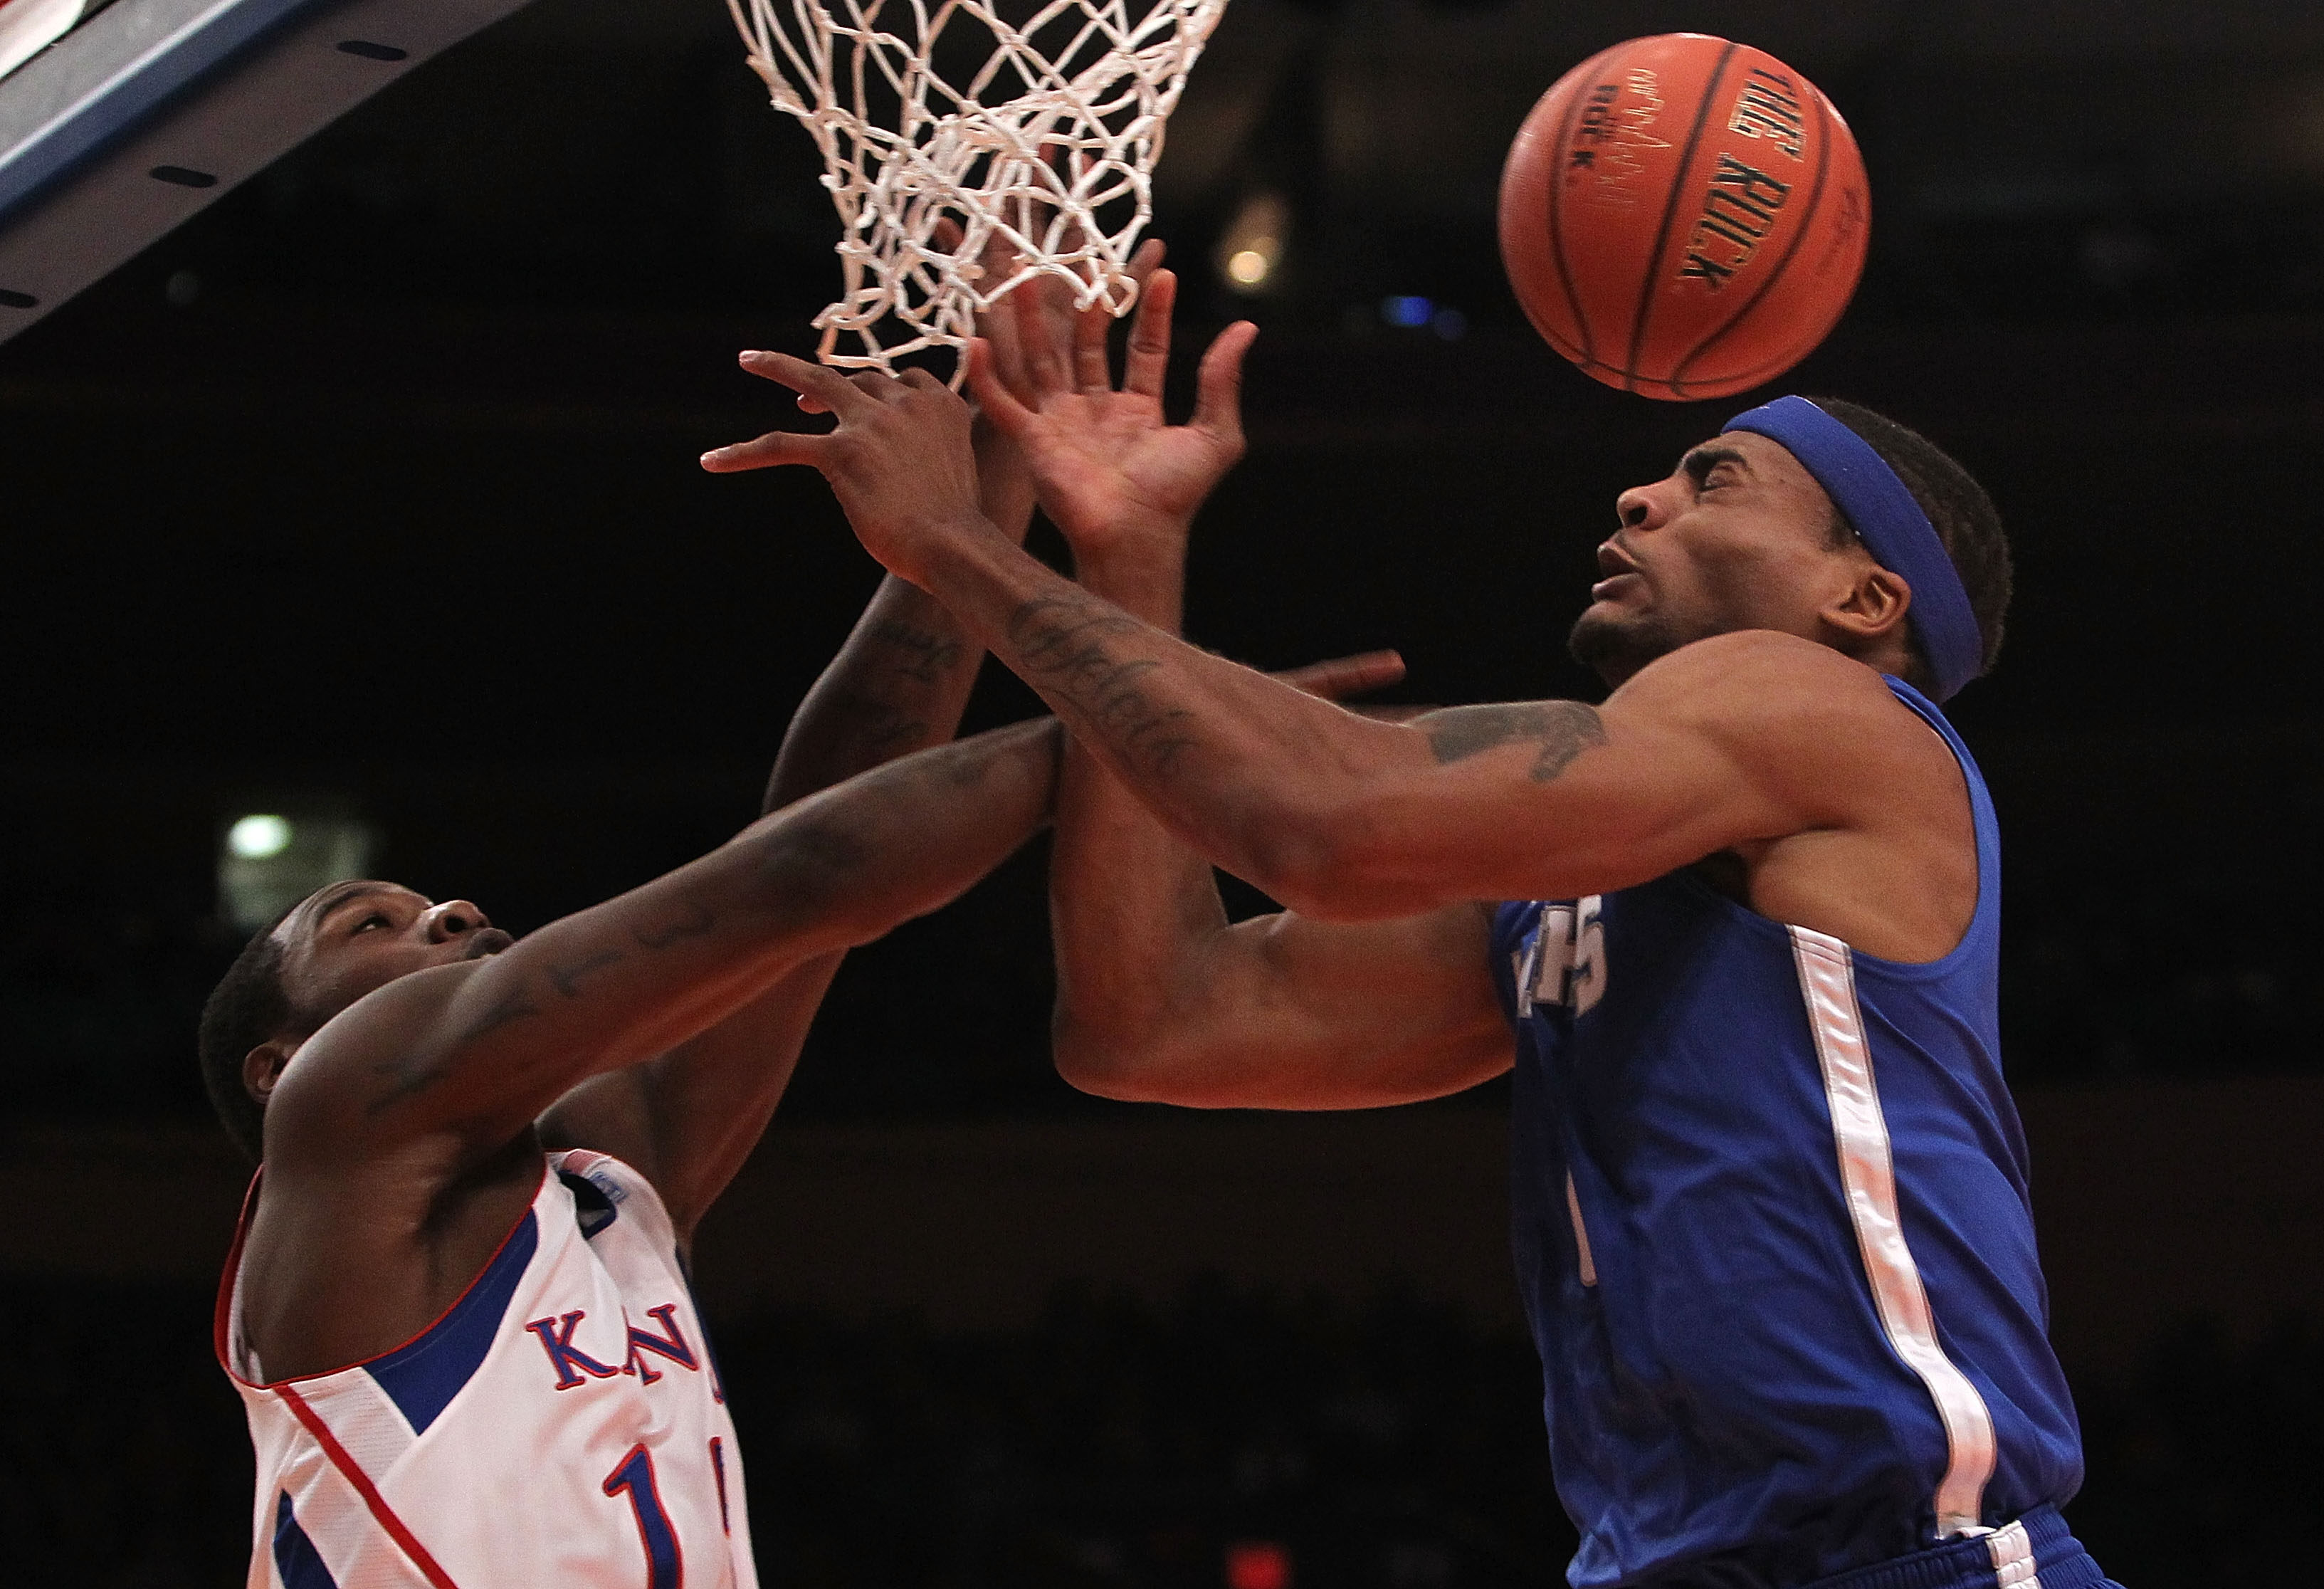 NEW YORK, NY - DECEMBER 07:  Will Coleman #0 of the Memphis Tigers contests a rebound with Elijah Johnson #15 of the Kansas Jayhawks during their game at the Jimmy V Classic at Madison Square Garden on December 7, 2010 in New York City.  (Photo by Nick La